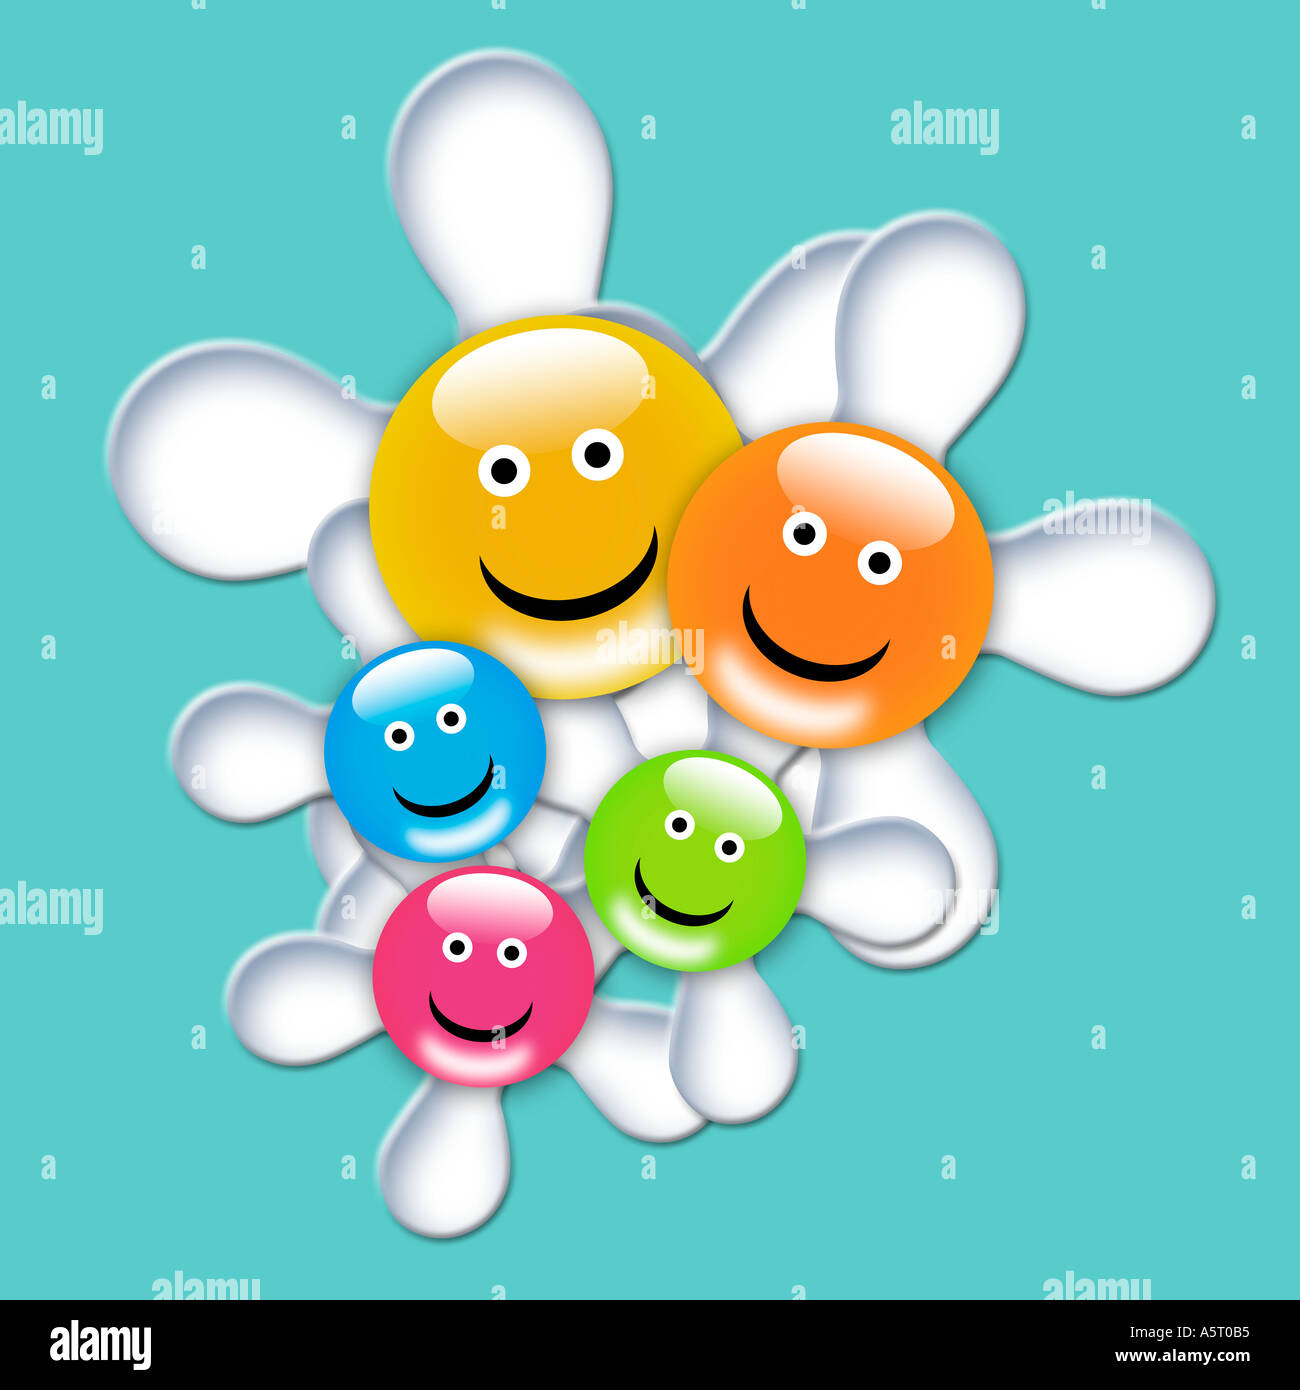 Illustrations enfants fleurs sourire Photo Stock